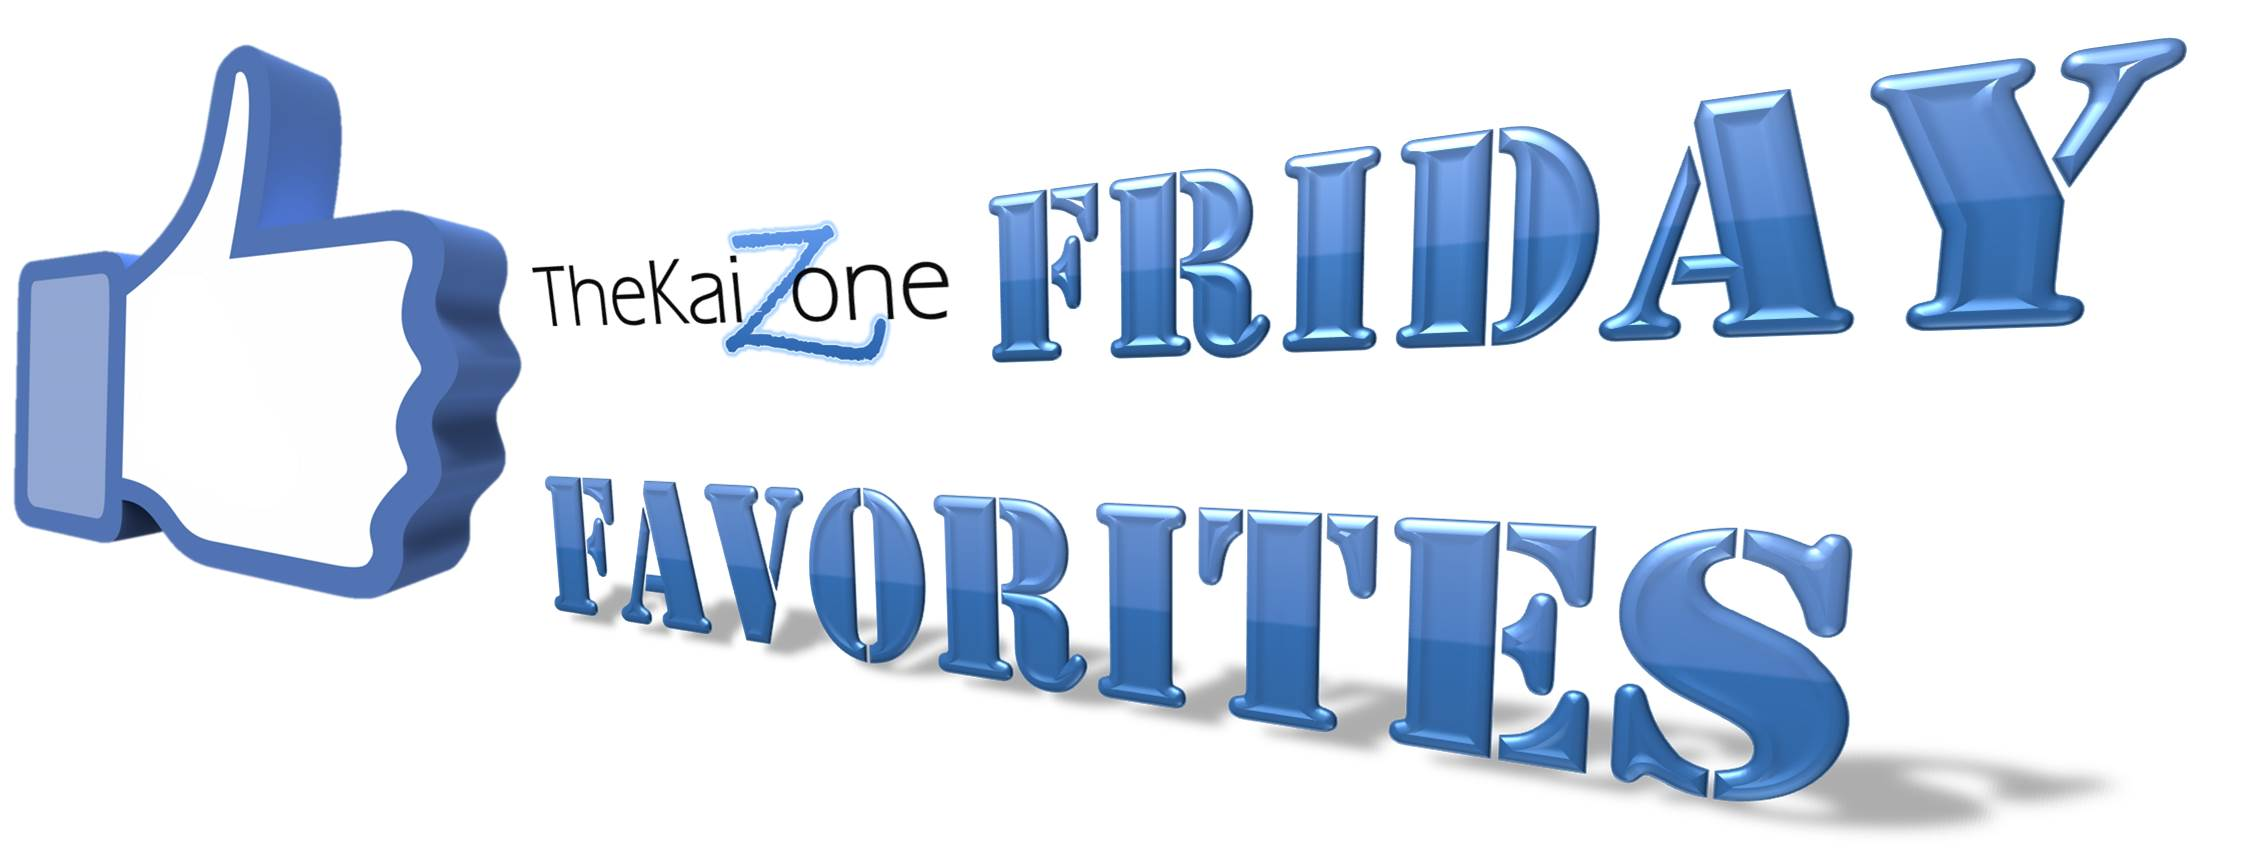 The New KaiZone Friday Favorites